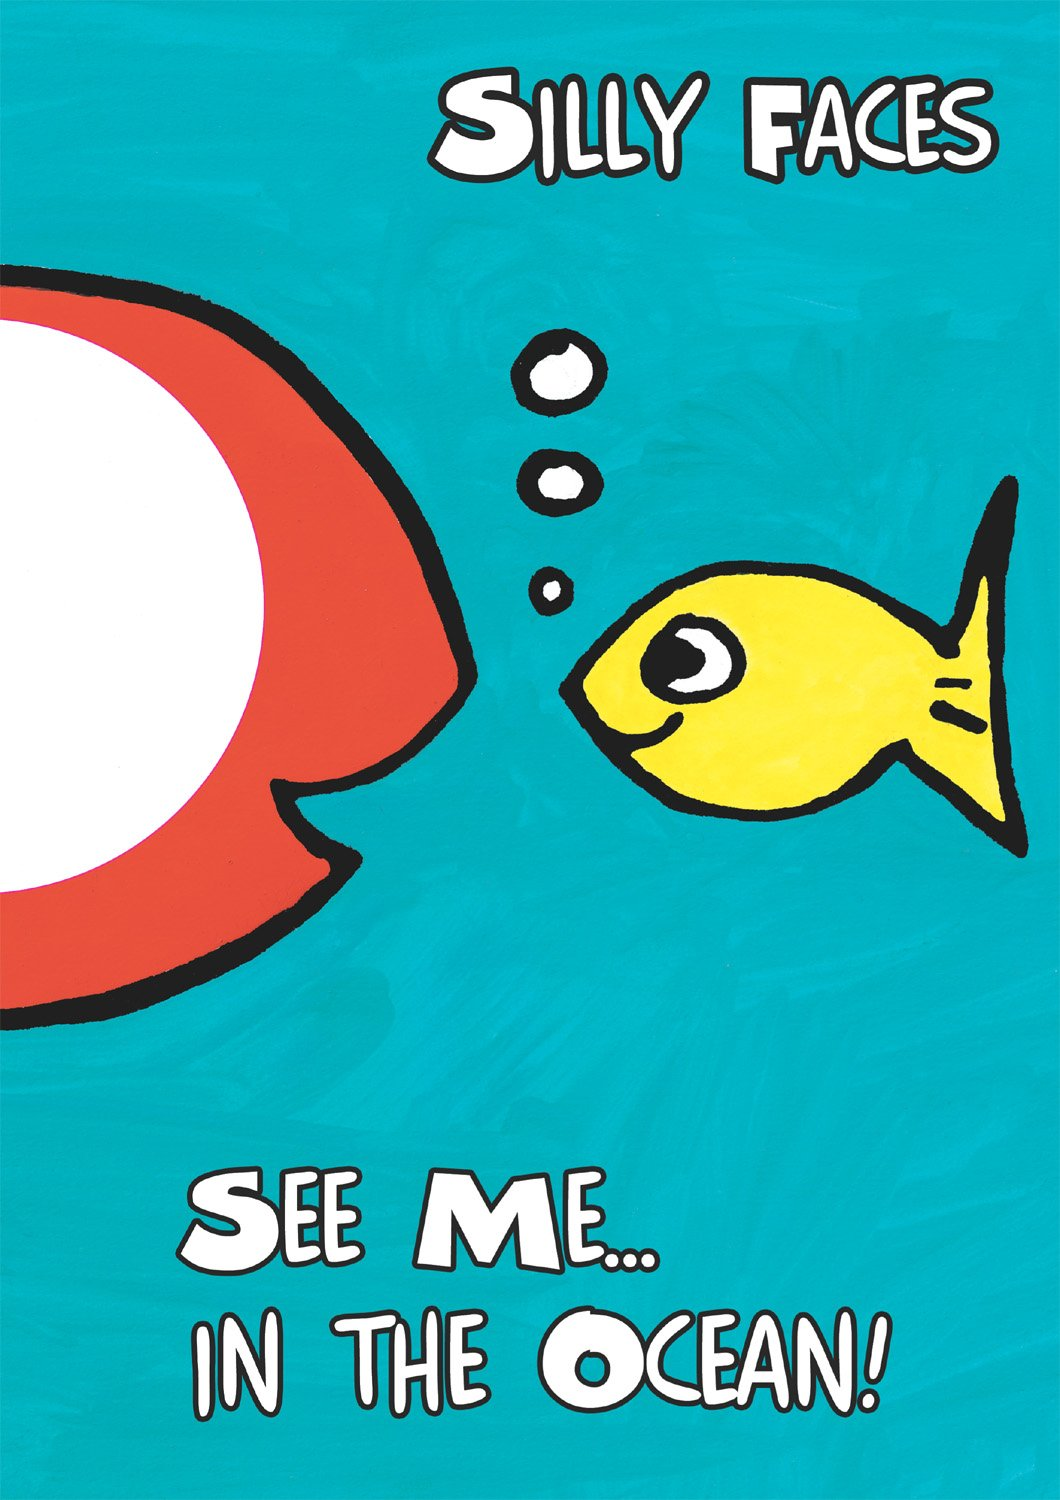 See Me... in the Ocean! (Silly Faces) ePub fb2 ebook